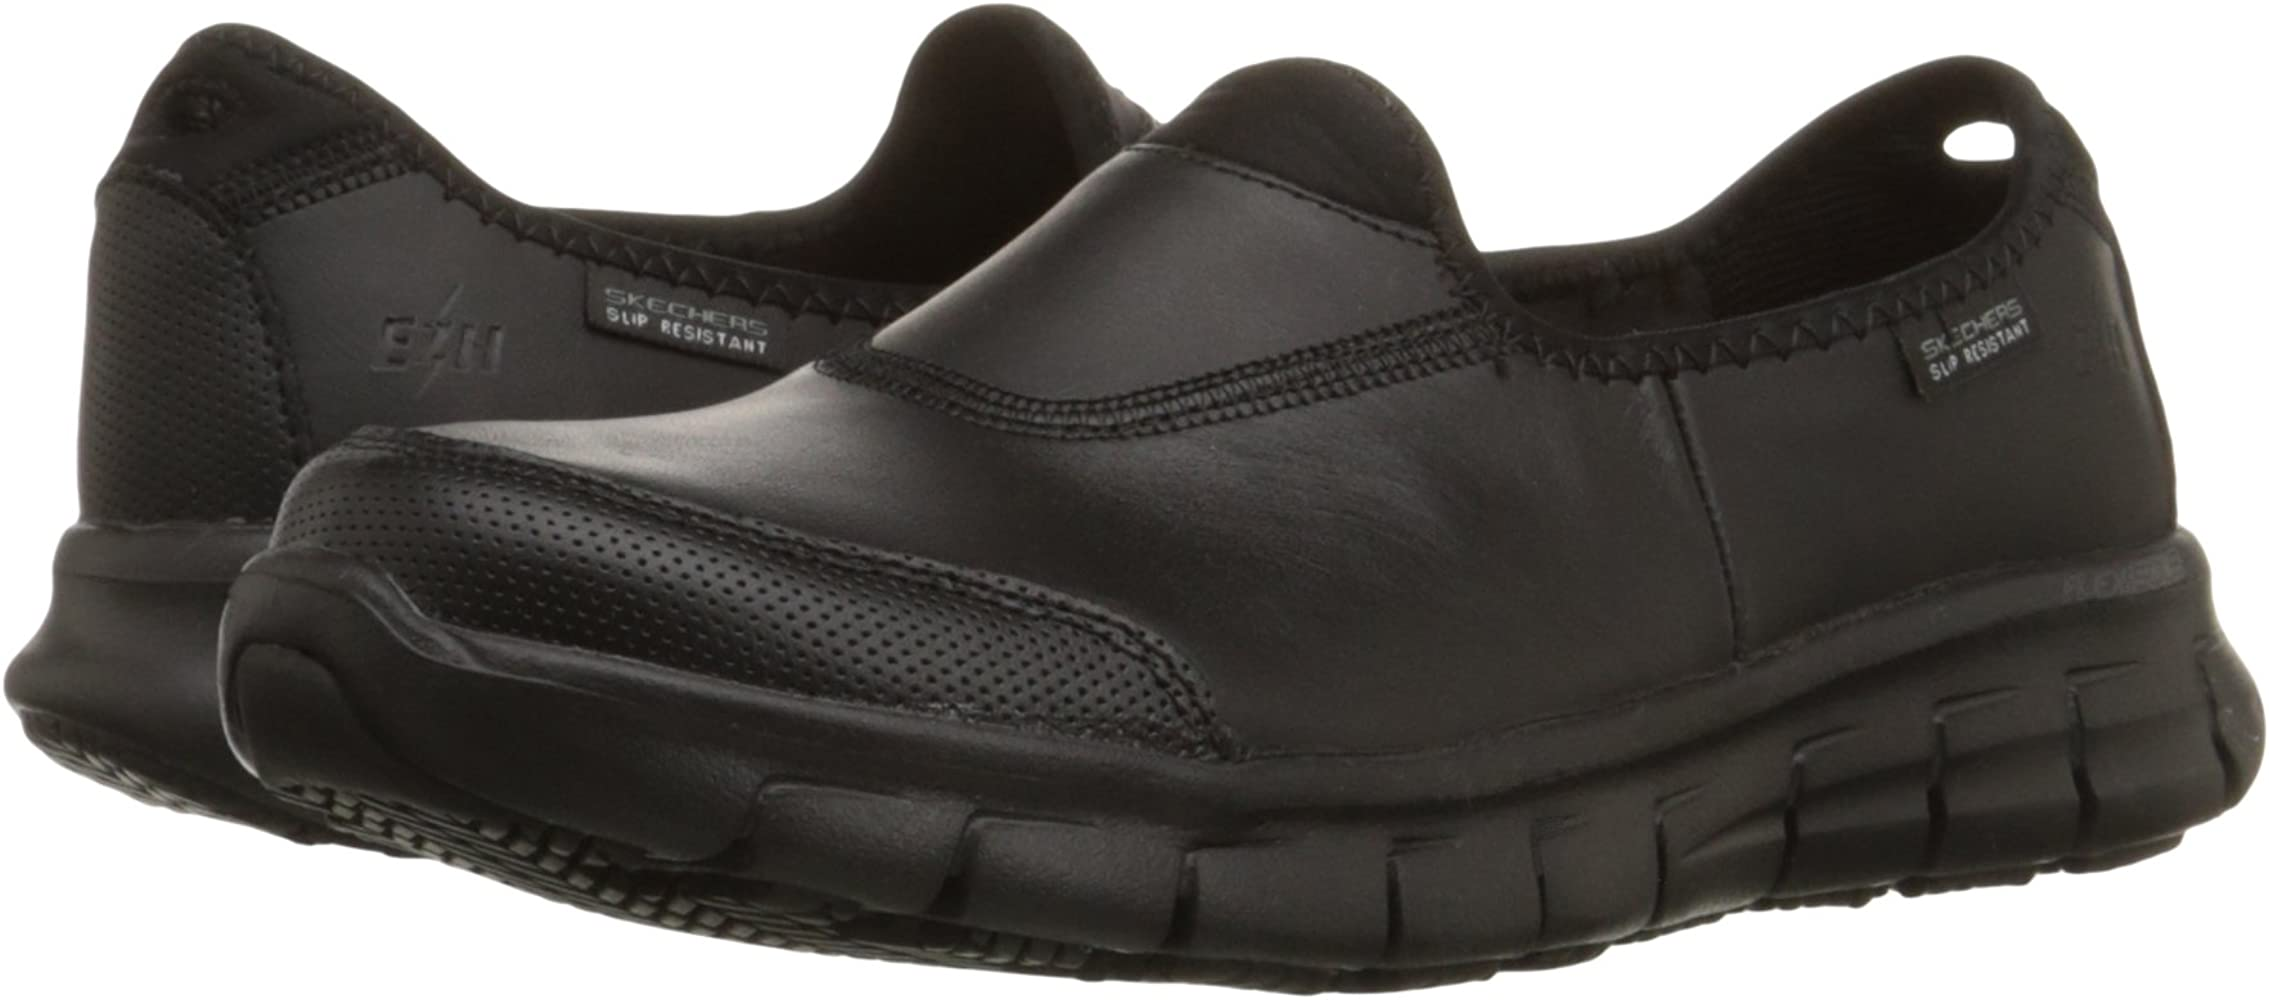 for Work Women's Sure Track Slip Resistant Shoe, Black, 9.5 M US